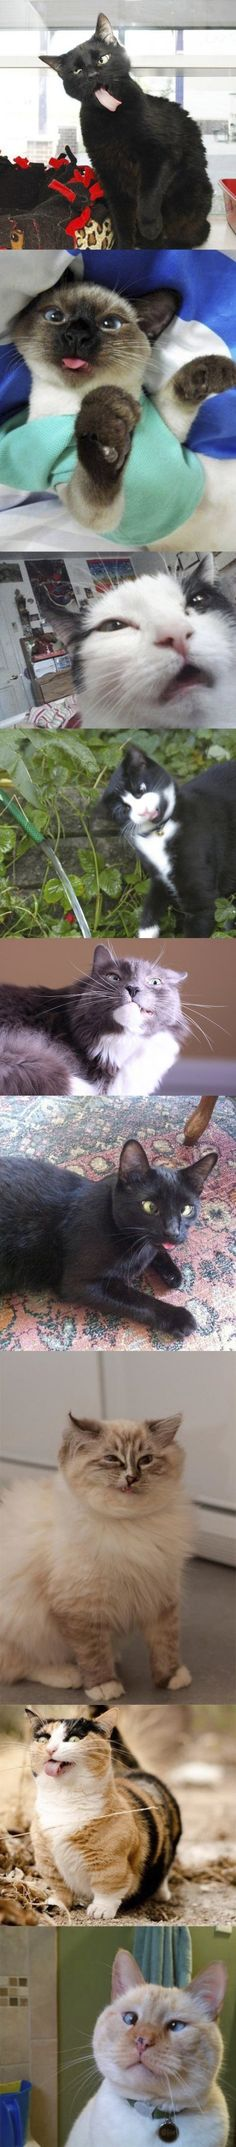 Derpy Cats - Fun Picture   Webfail - Fail Pictures and Fail Videos.